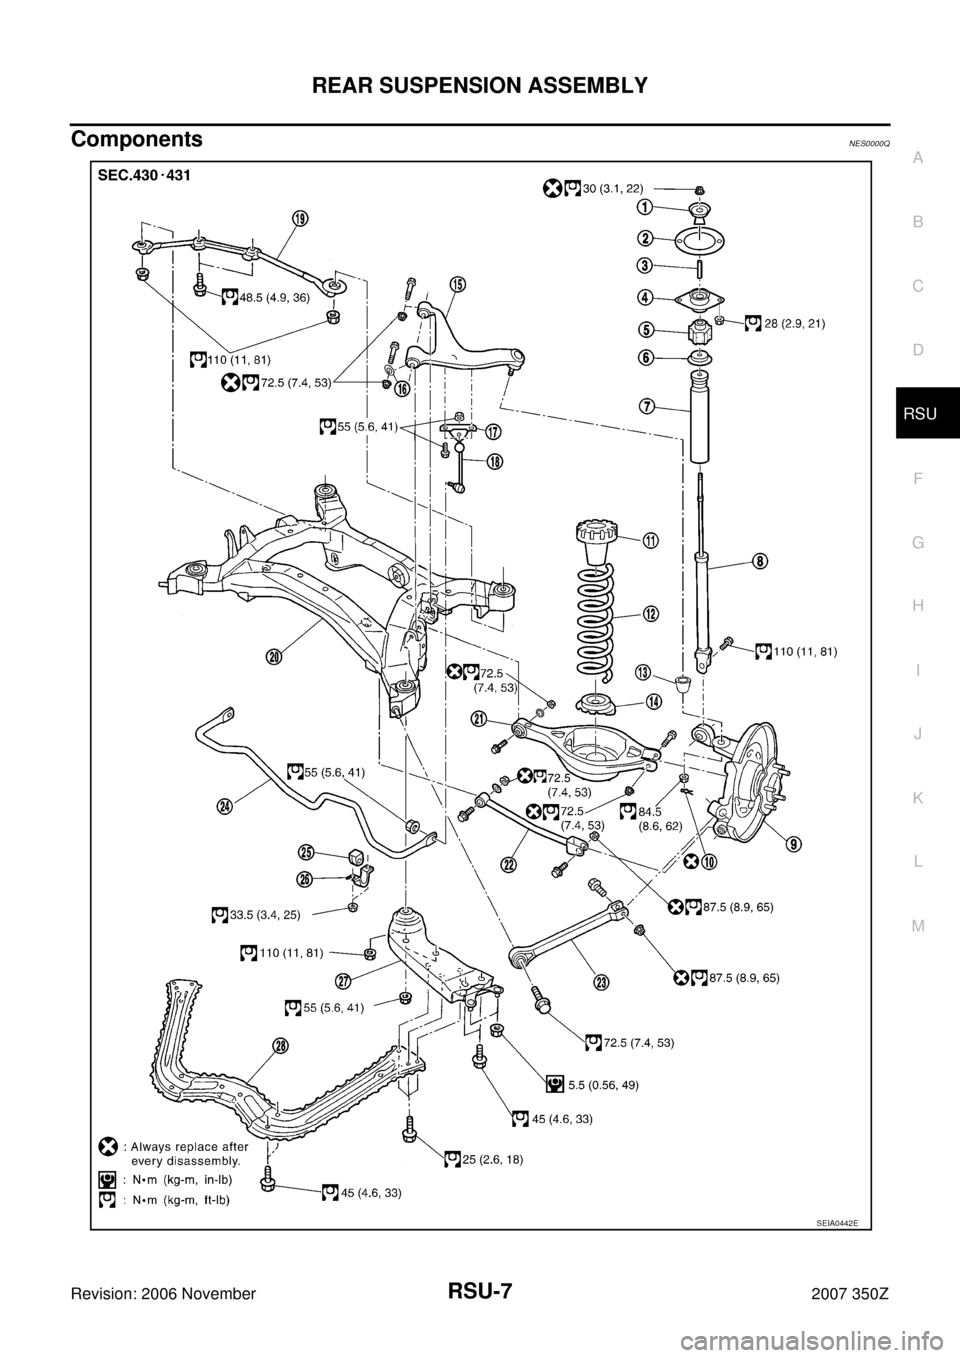 NISSAN 350Z 2007 Z33 Rear Suspension Workshop Manual, Page 7